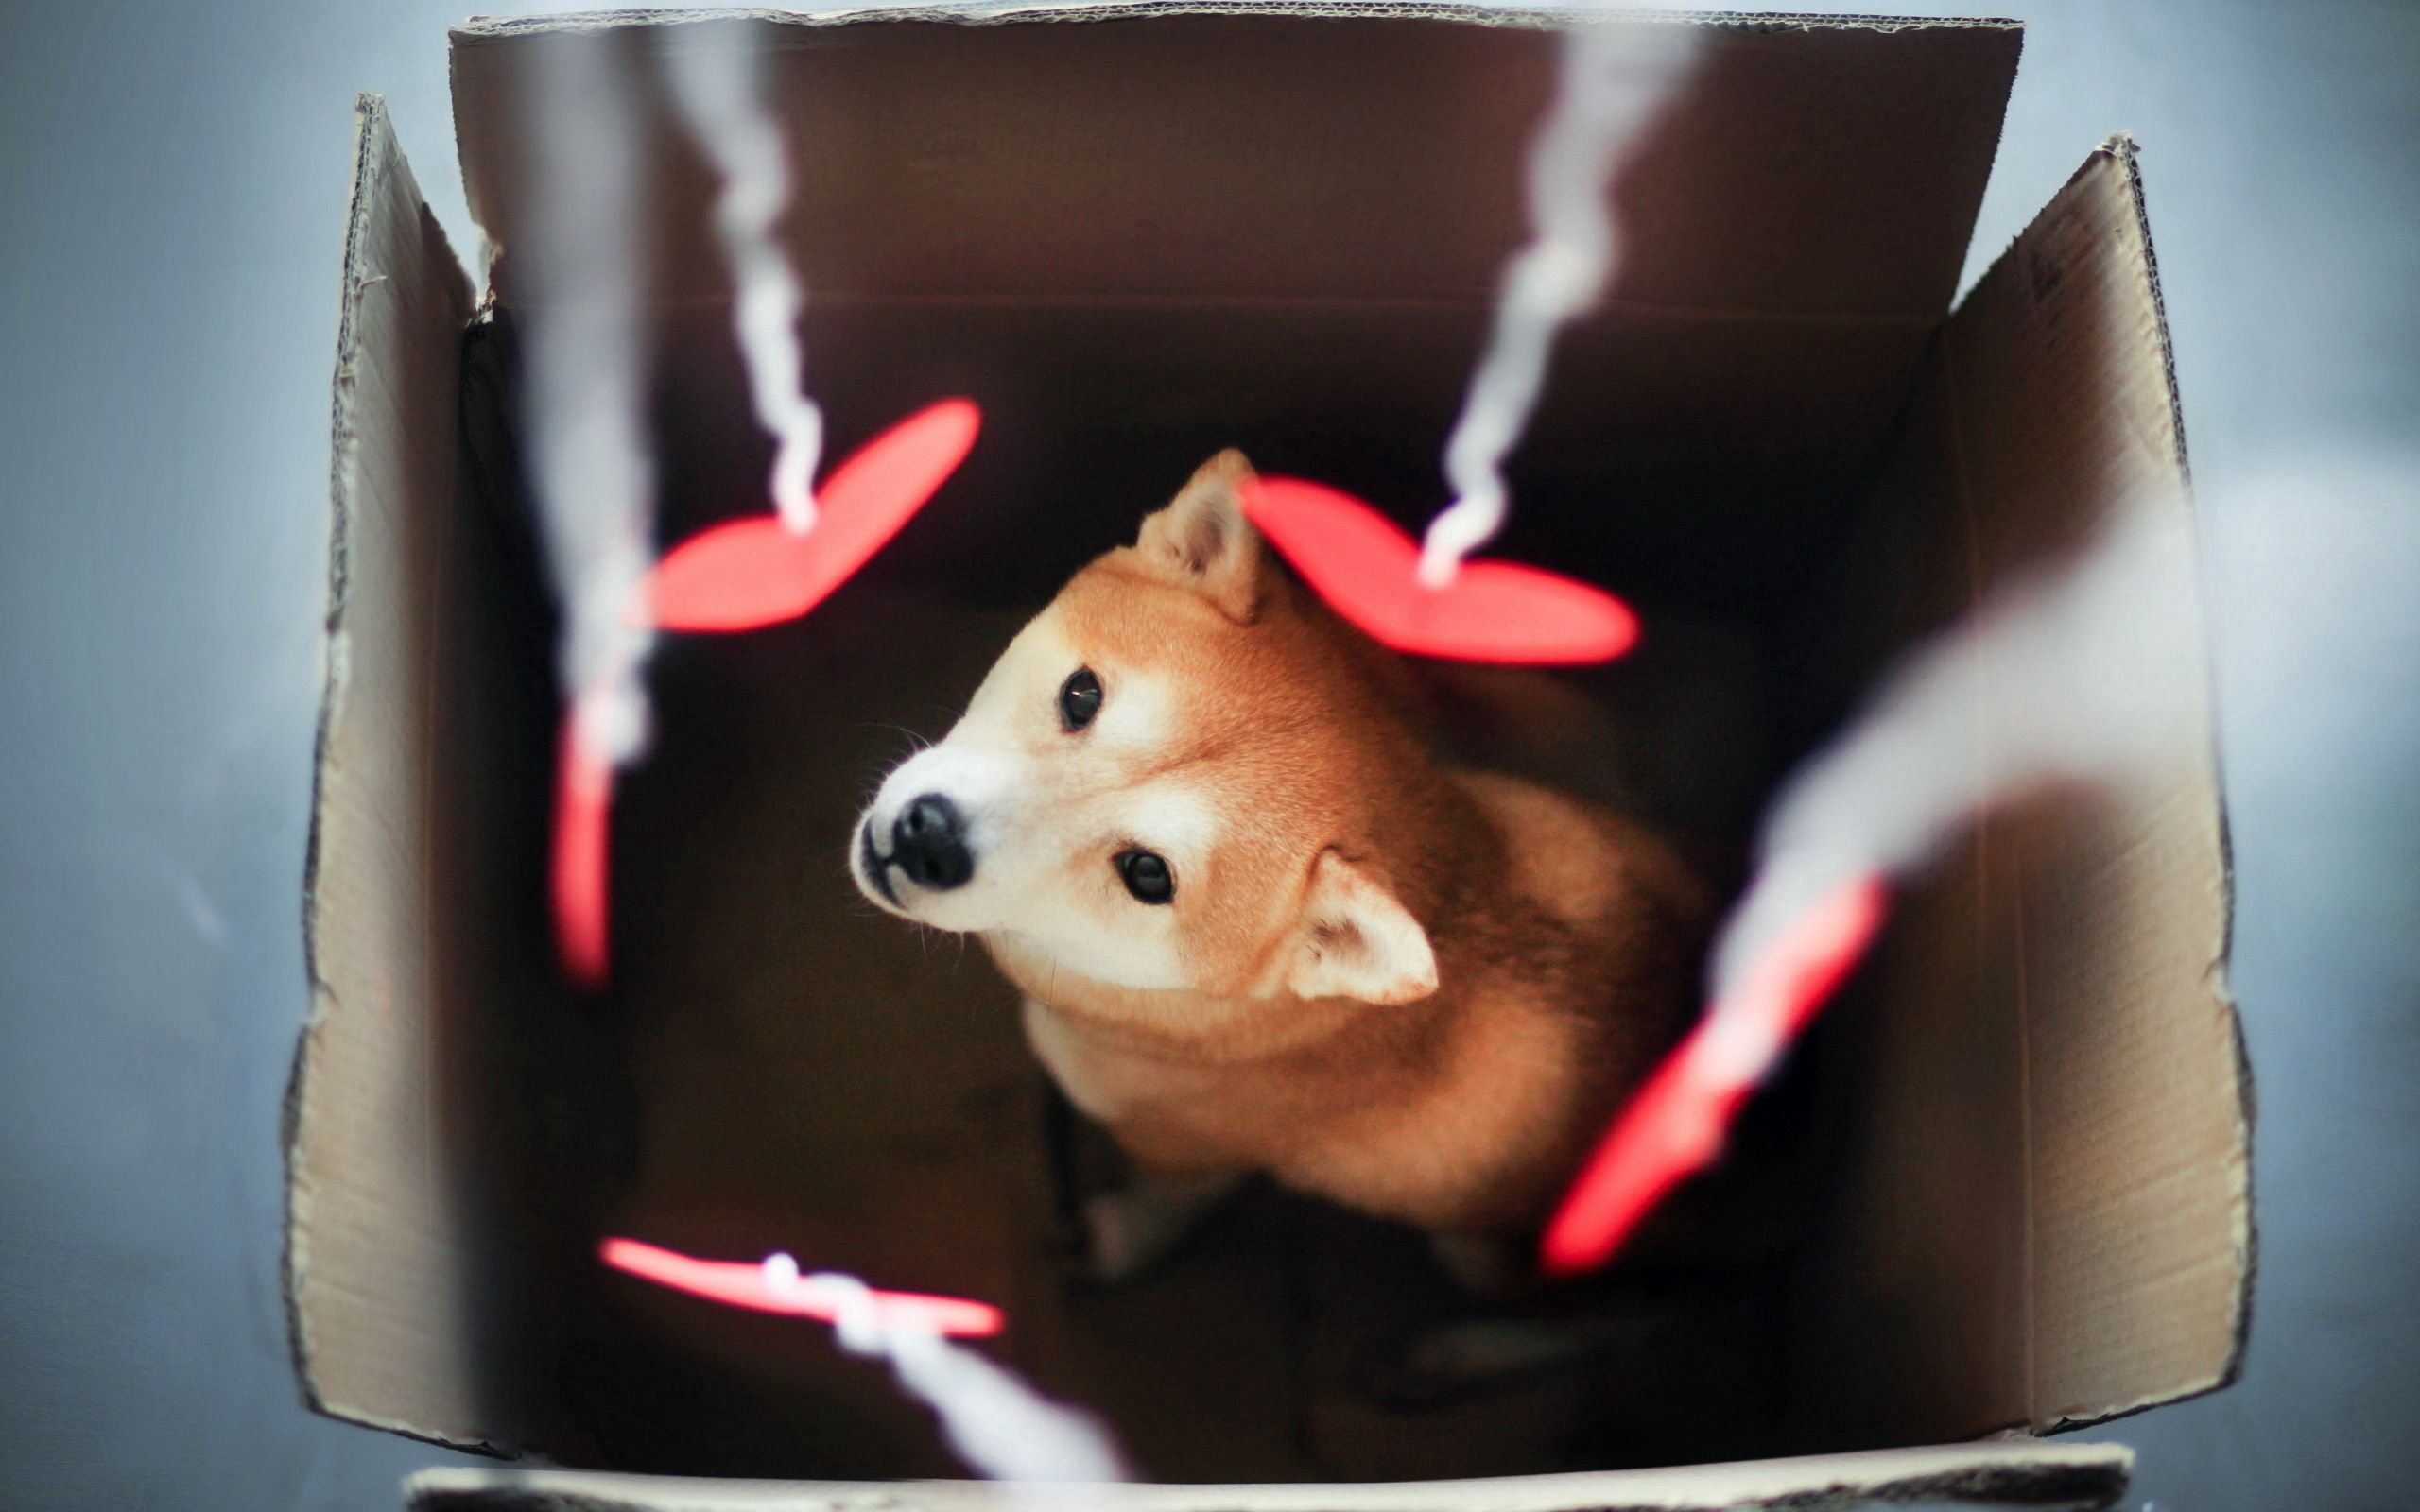 102046 download wallpaper Animals, Dog, Akita Inu, Box, Blur, Smooth screensavers and pictures for free